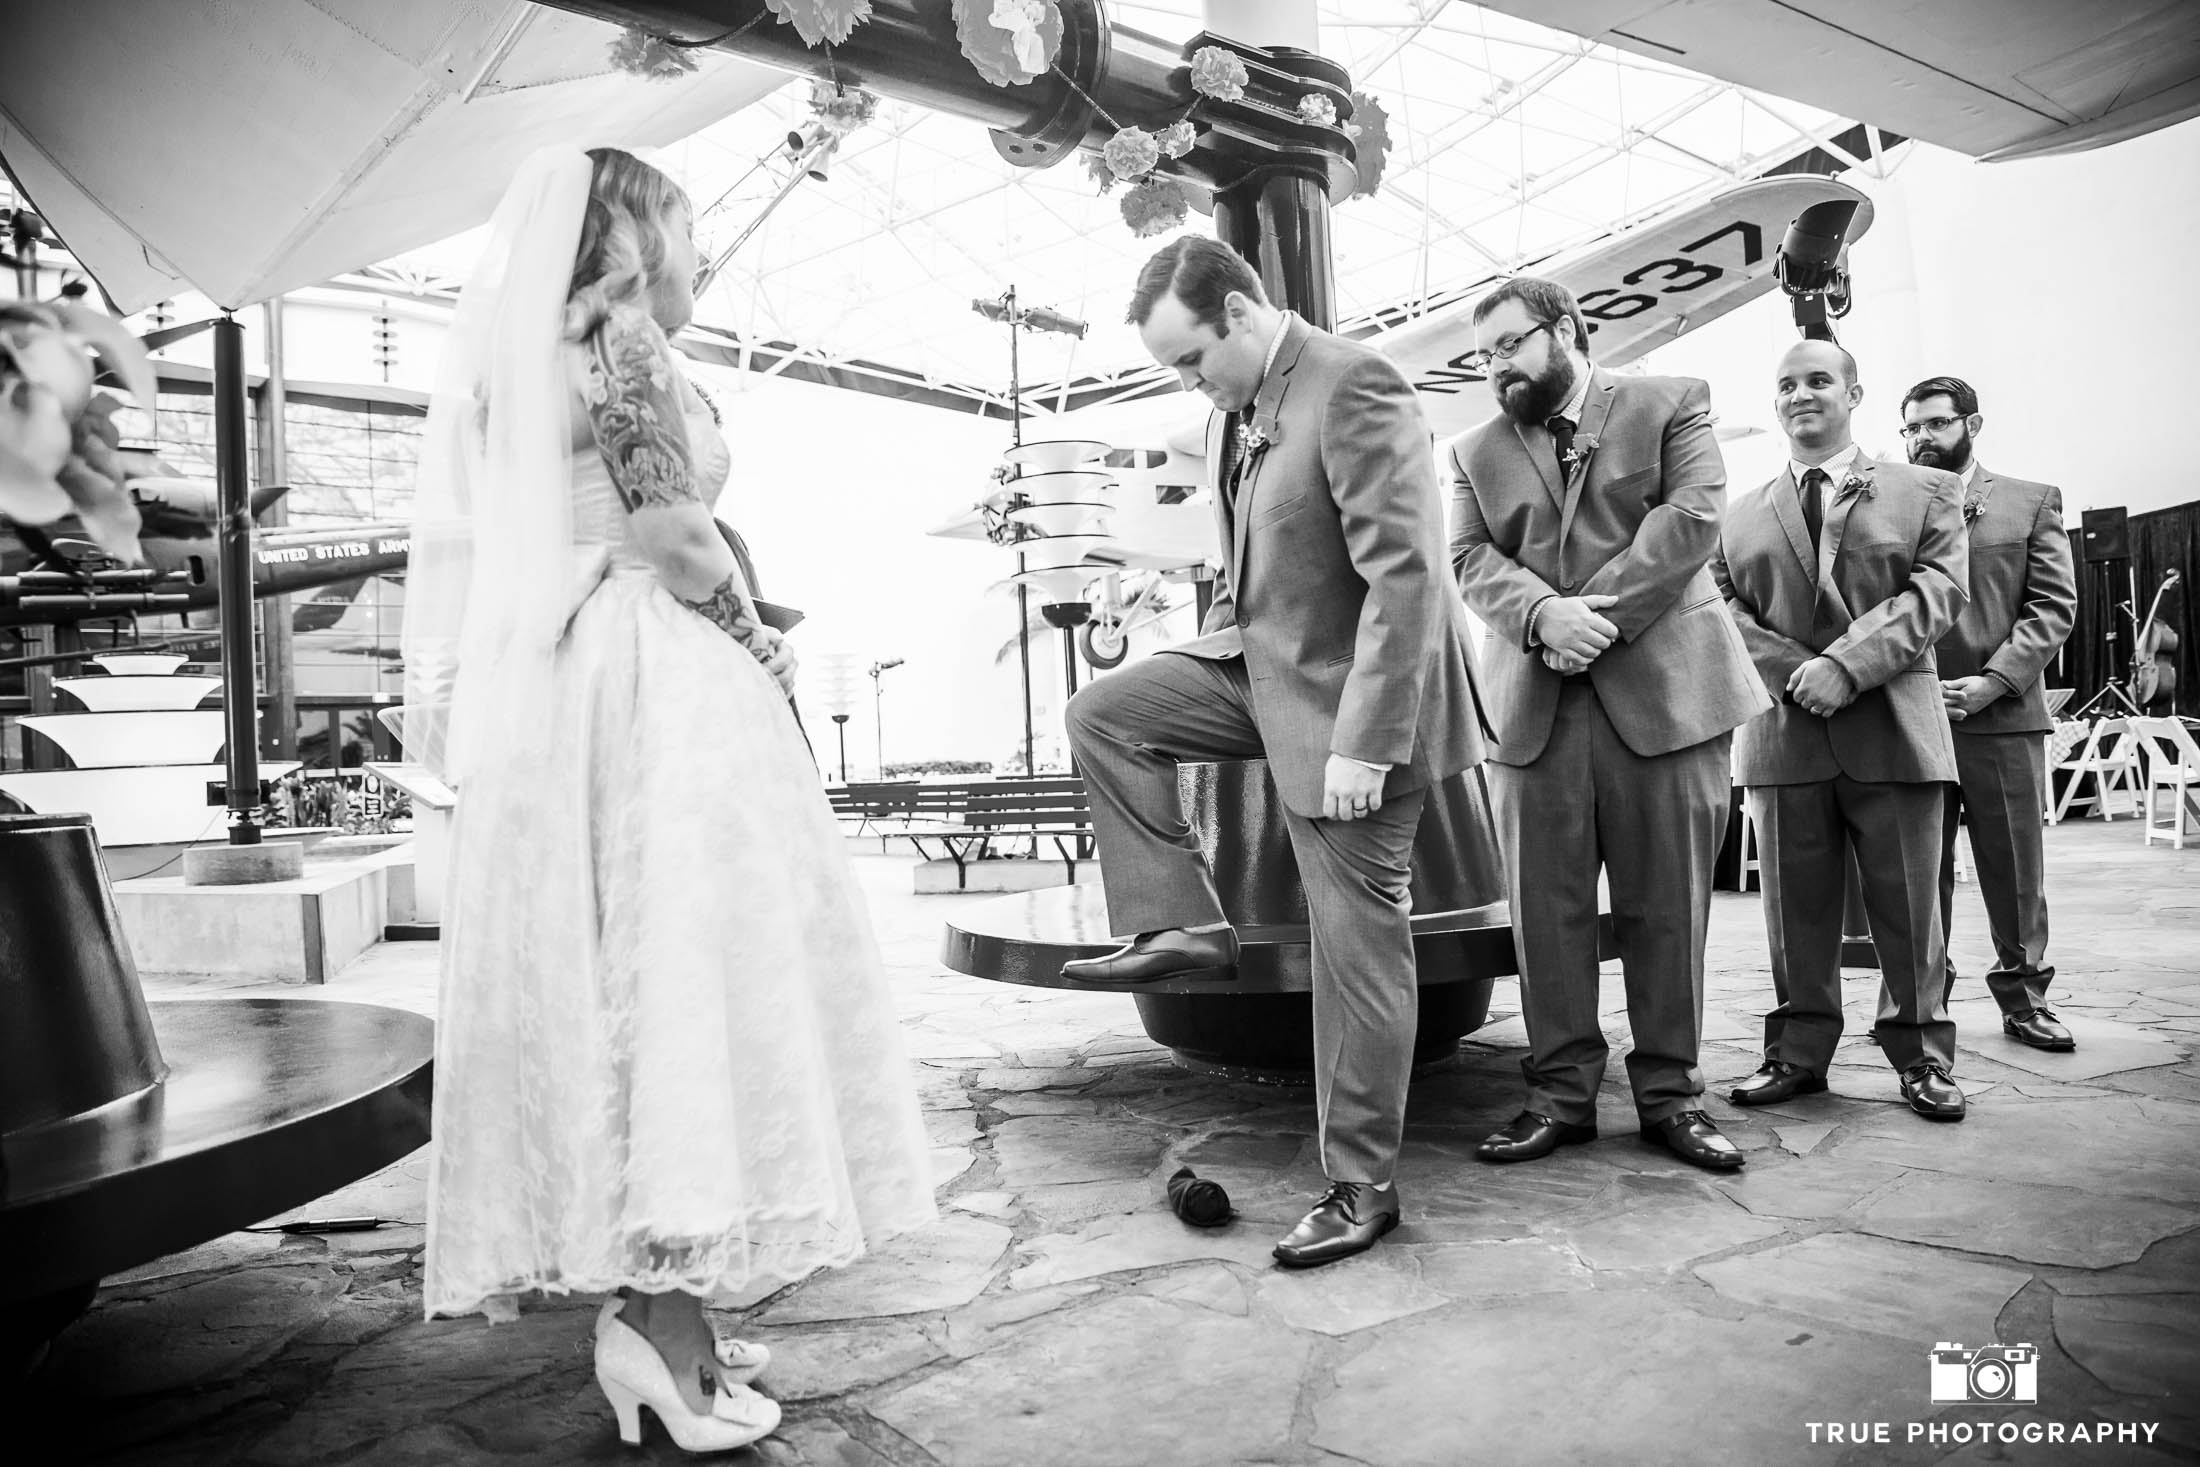 Bride watches as Groom steps on wine glass during wedding ceremony at museum